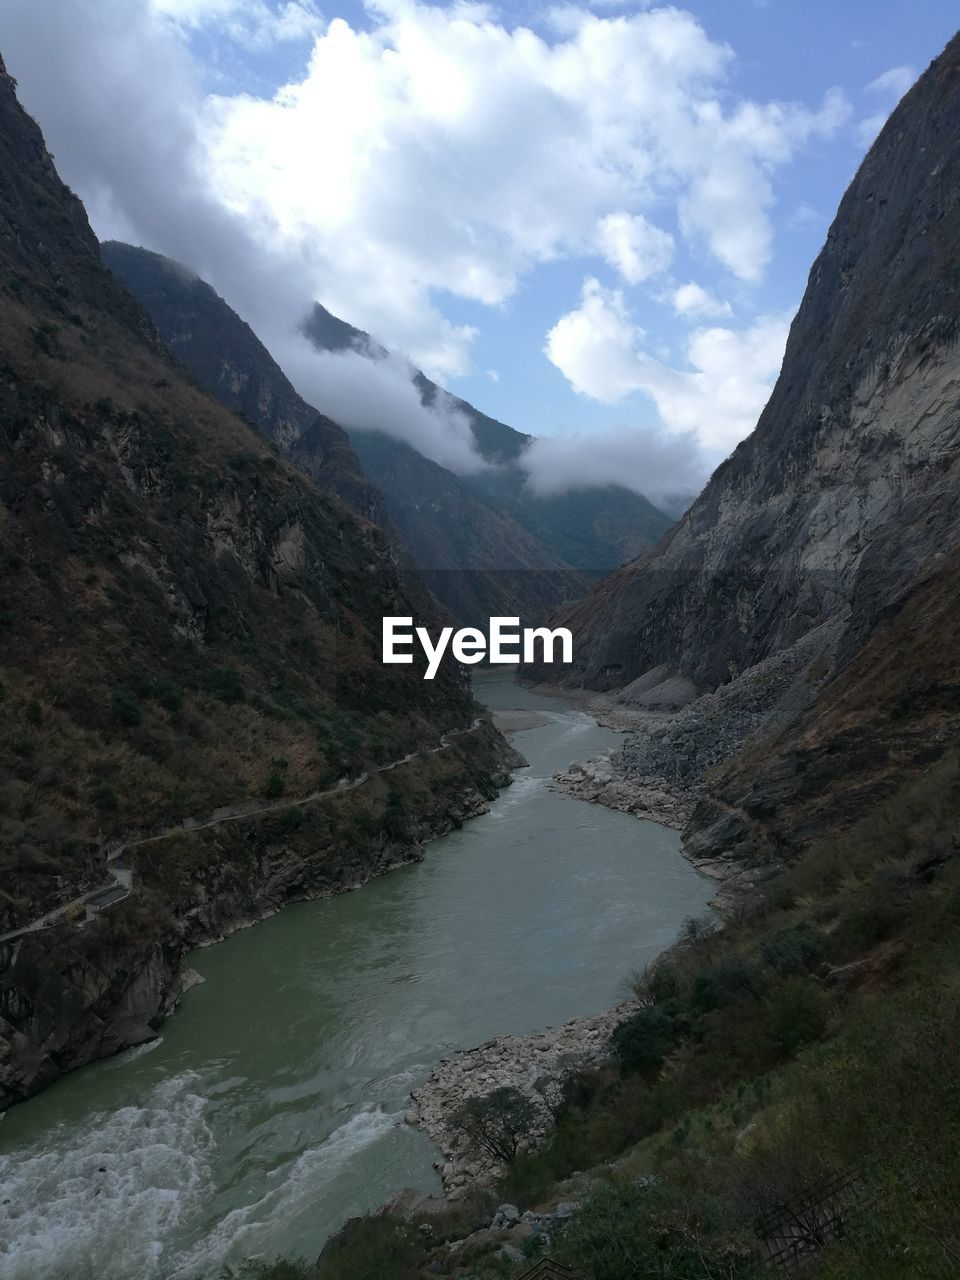 mountain, nature, beauty in nature, landscape, scenery, wilderness, environment, water, river, sky, day, outdoors, no people